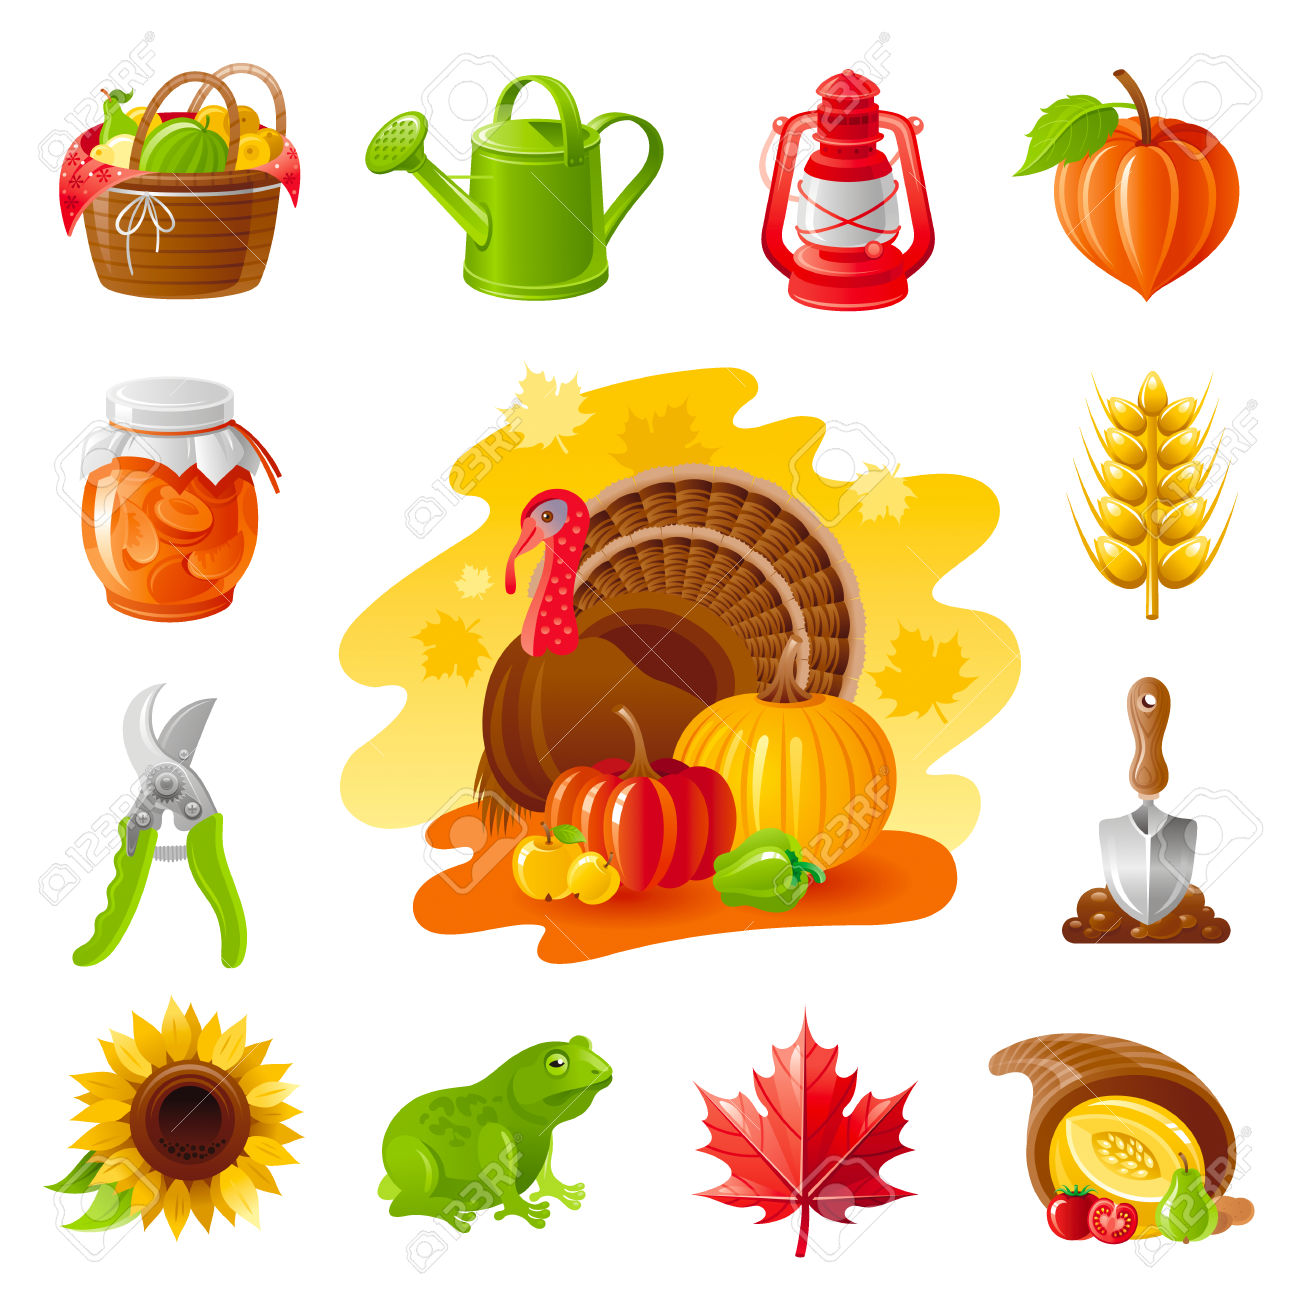 Agriculture Clip Art : Farm agriculture nature clipart clipground